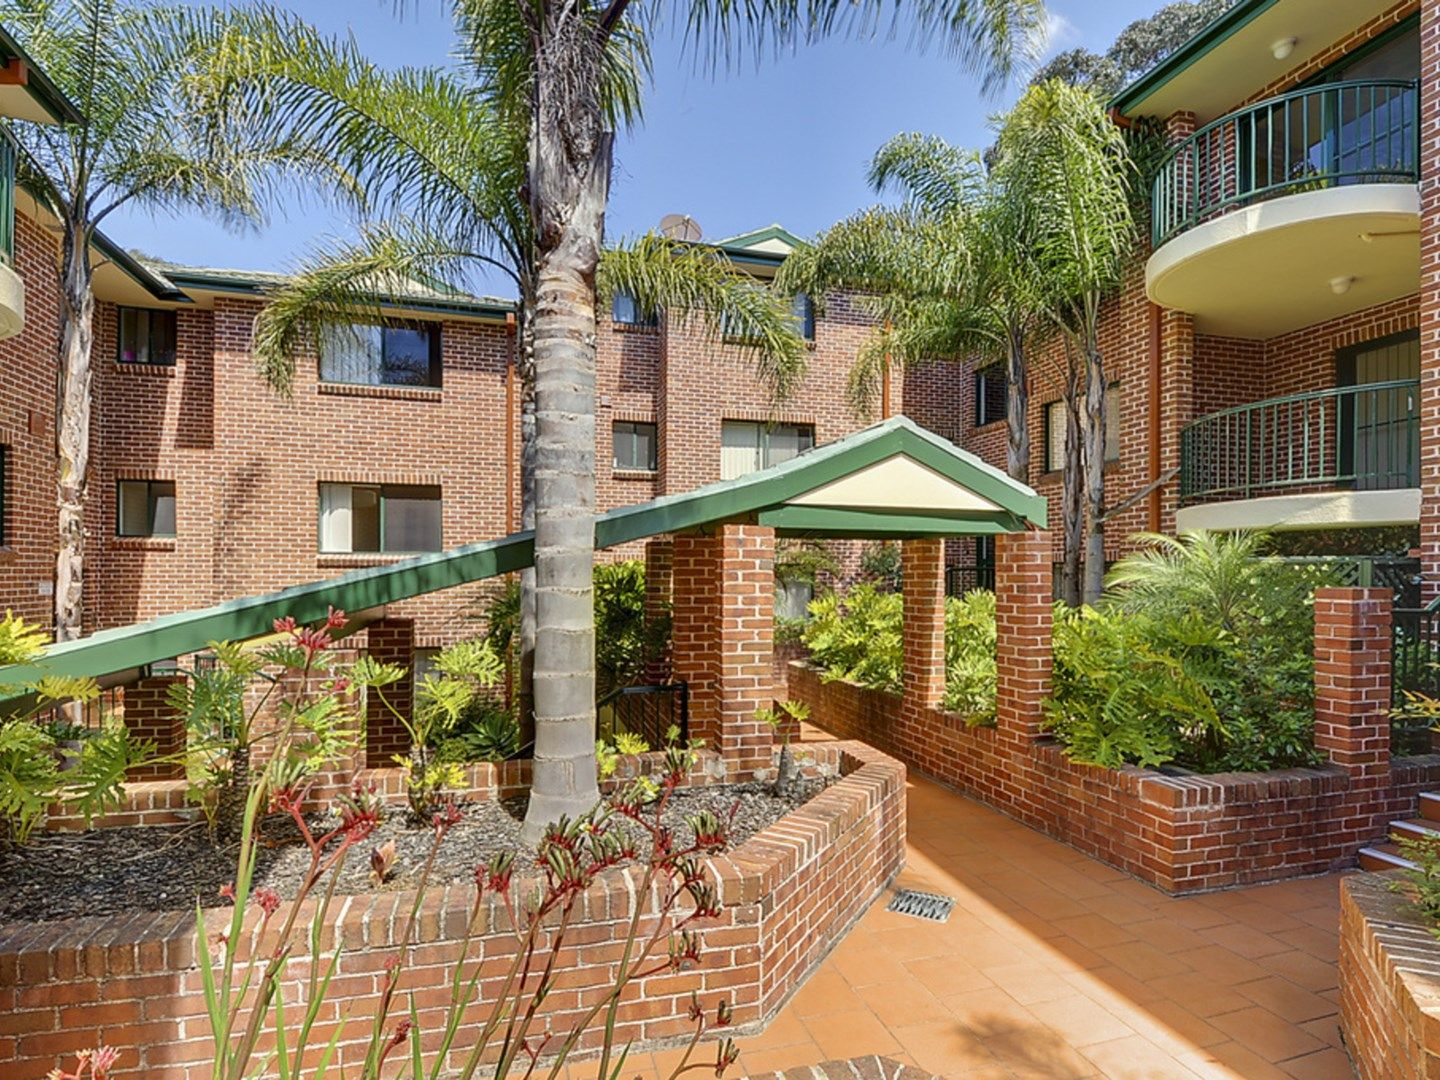 13/28-32 Bridge Road, Hornsby NSW 2077, Image 0